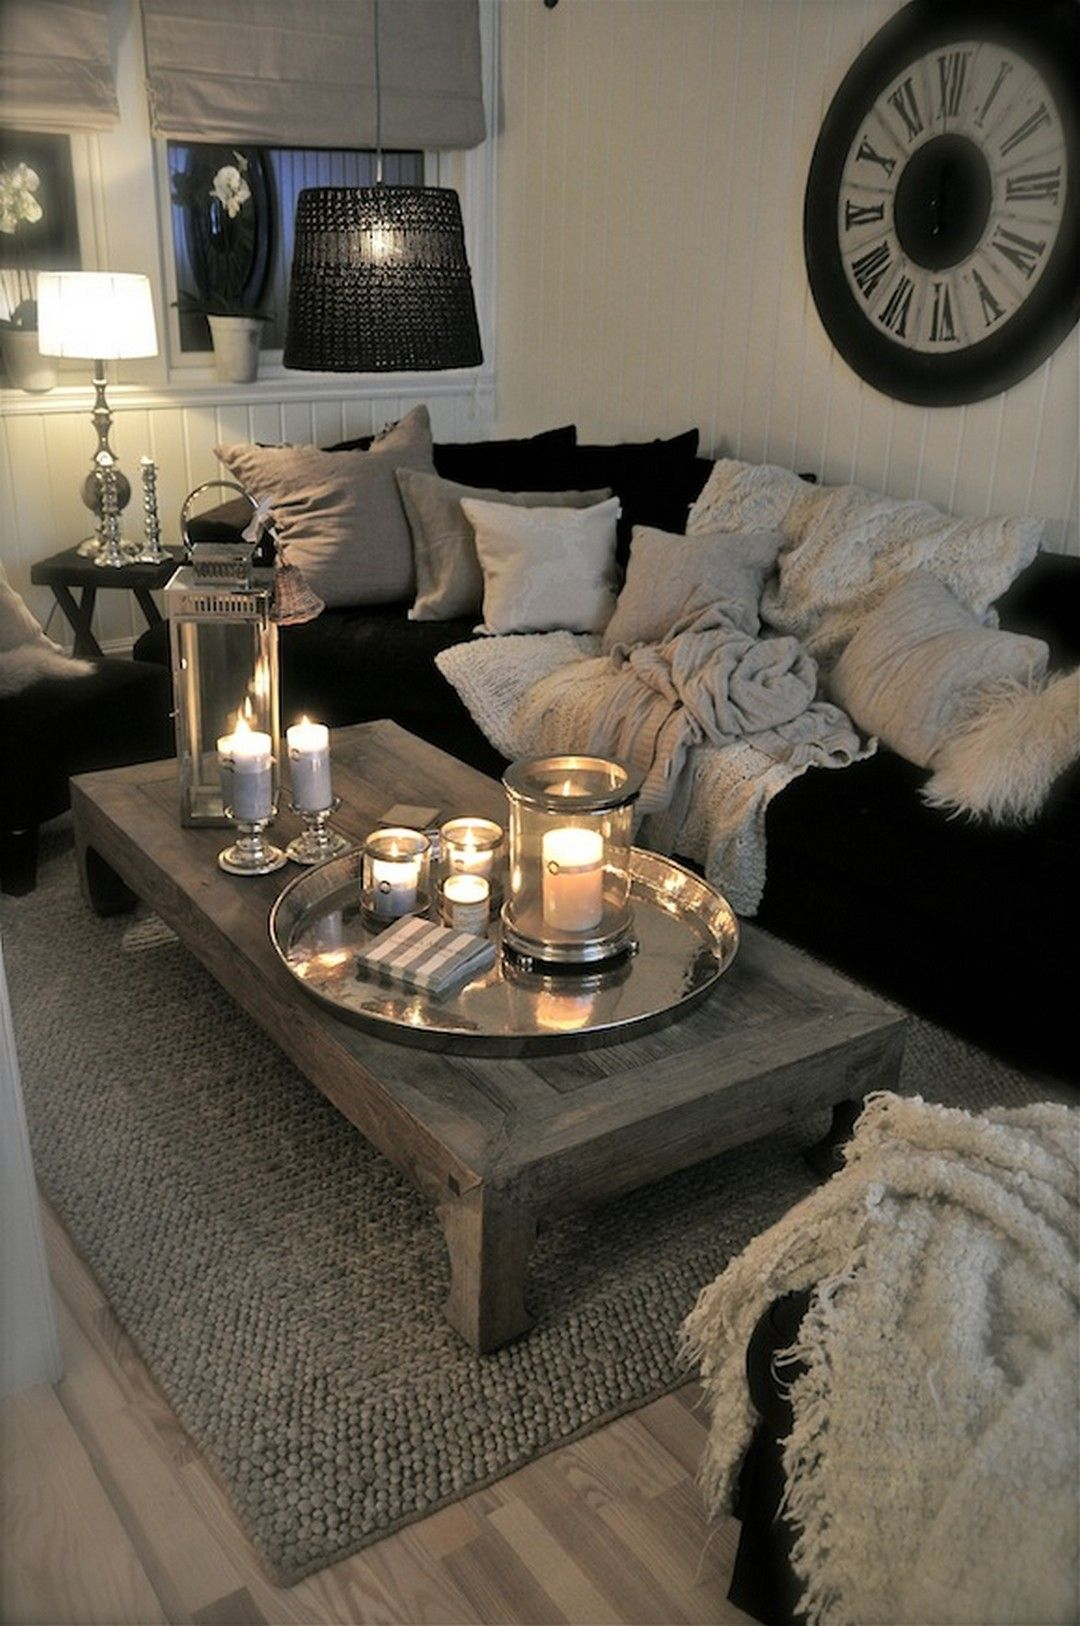 99 Easy DIY First Apartement Decorating Ideas   First ... on Awesome Apartment Budget Apartment Living Room Ideas  id=77706